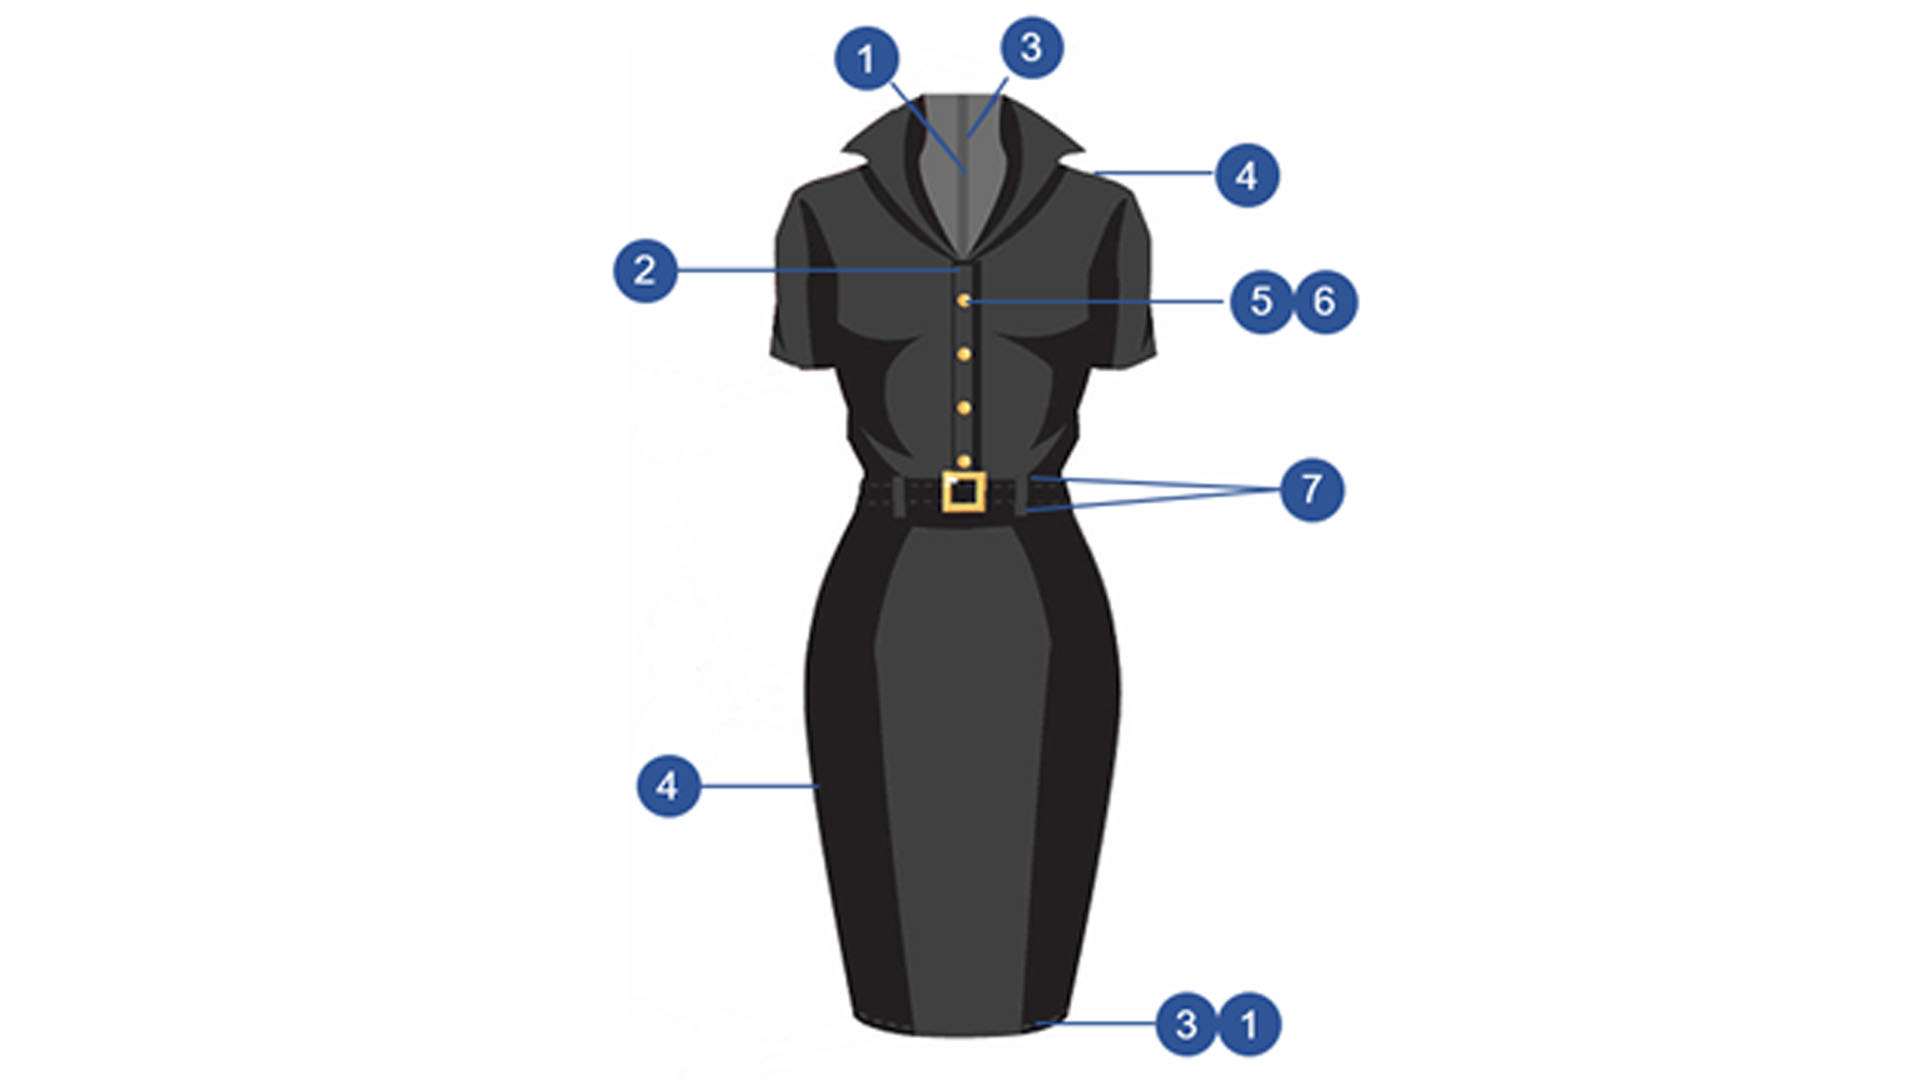 Ladieswear Dresses diagram